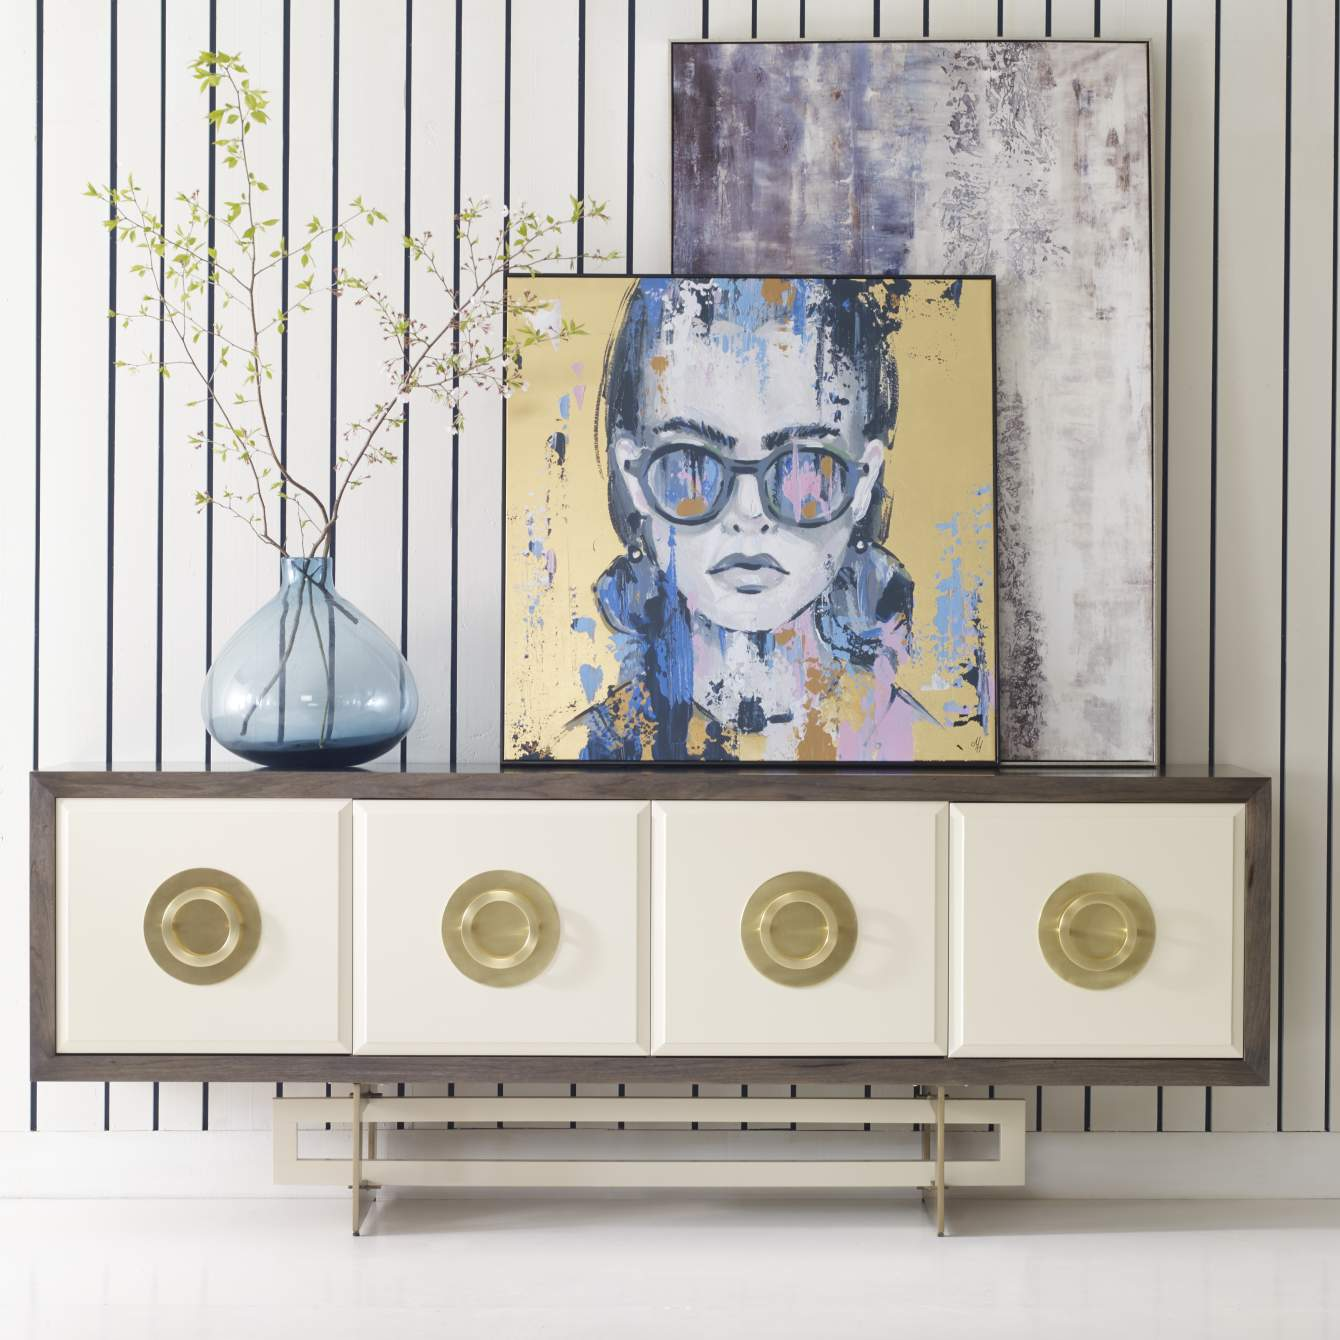 [object Object] Fountain Bleau Credenza